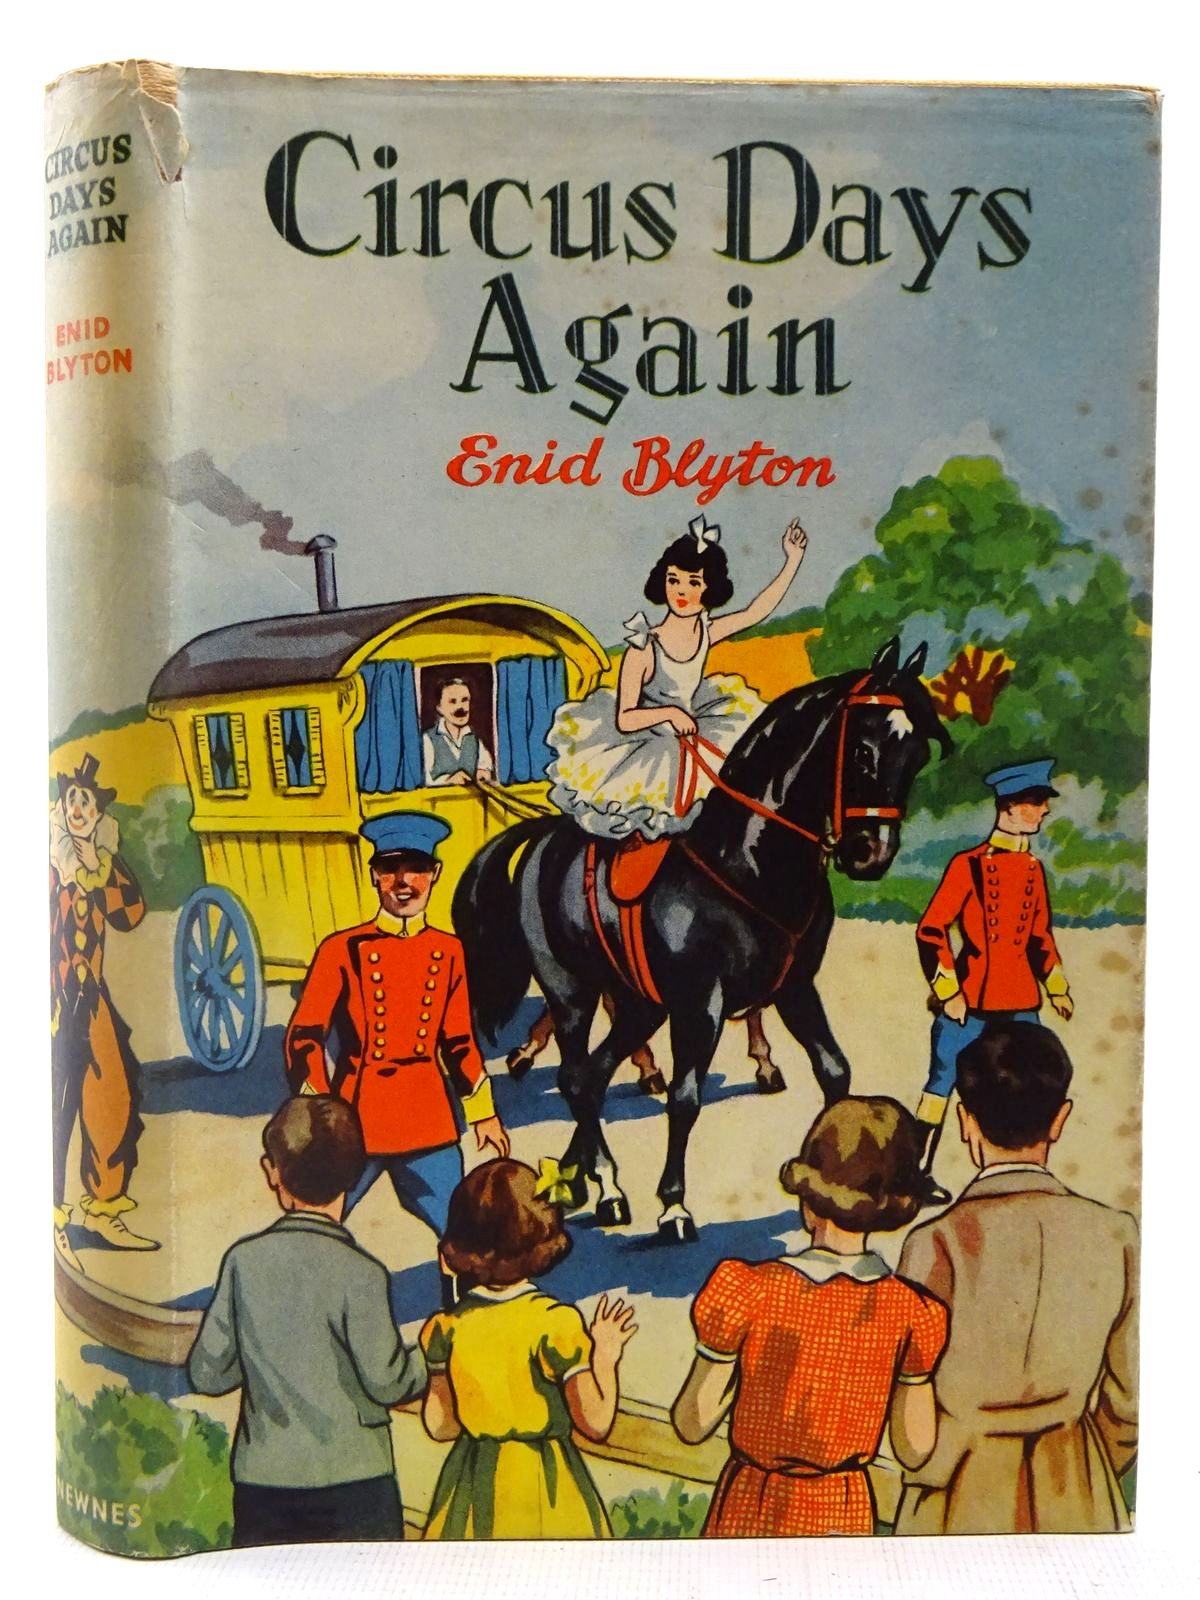 Photo of CIRCUS DAYS AGAIN written by Blyton, Enid illustrated by Davie, E.H. published by George Newnes Ltd. (STOCK CODE: 2127412)  for sale by Stella & Rose's Books